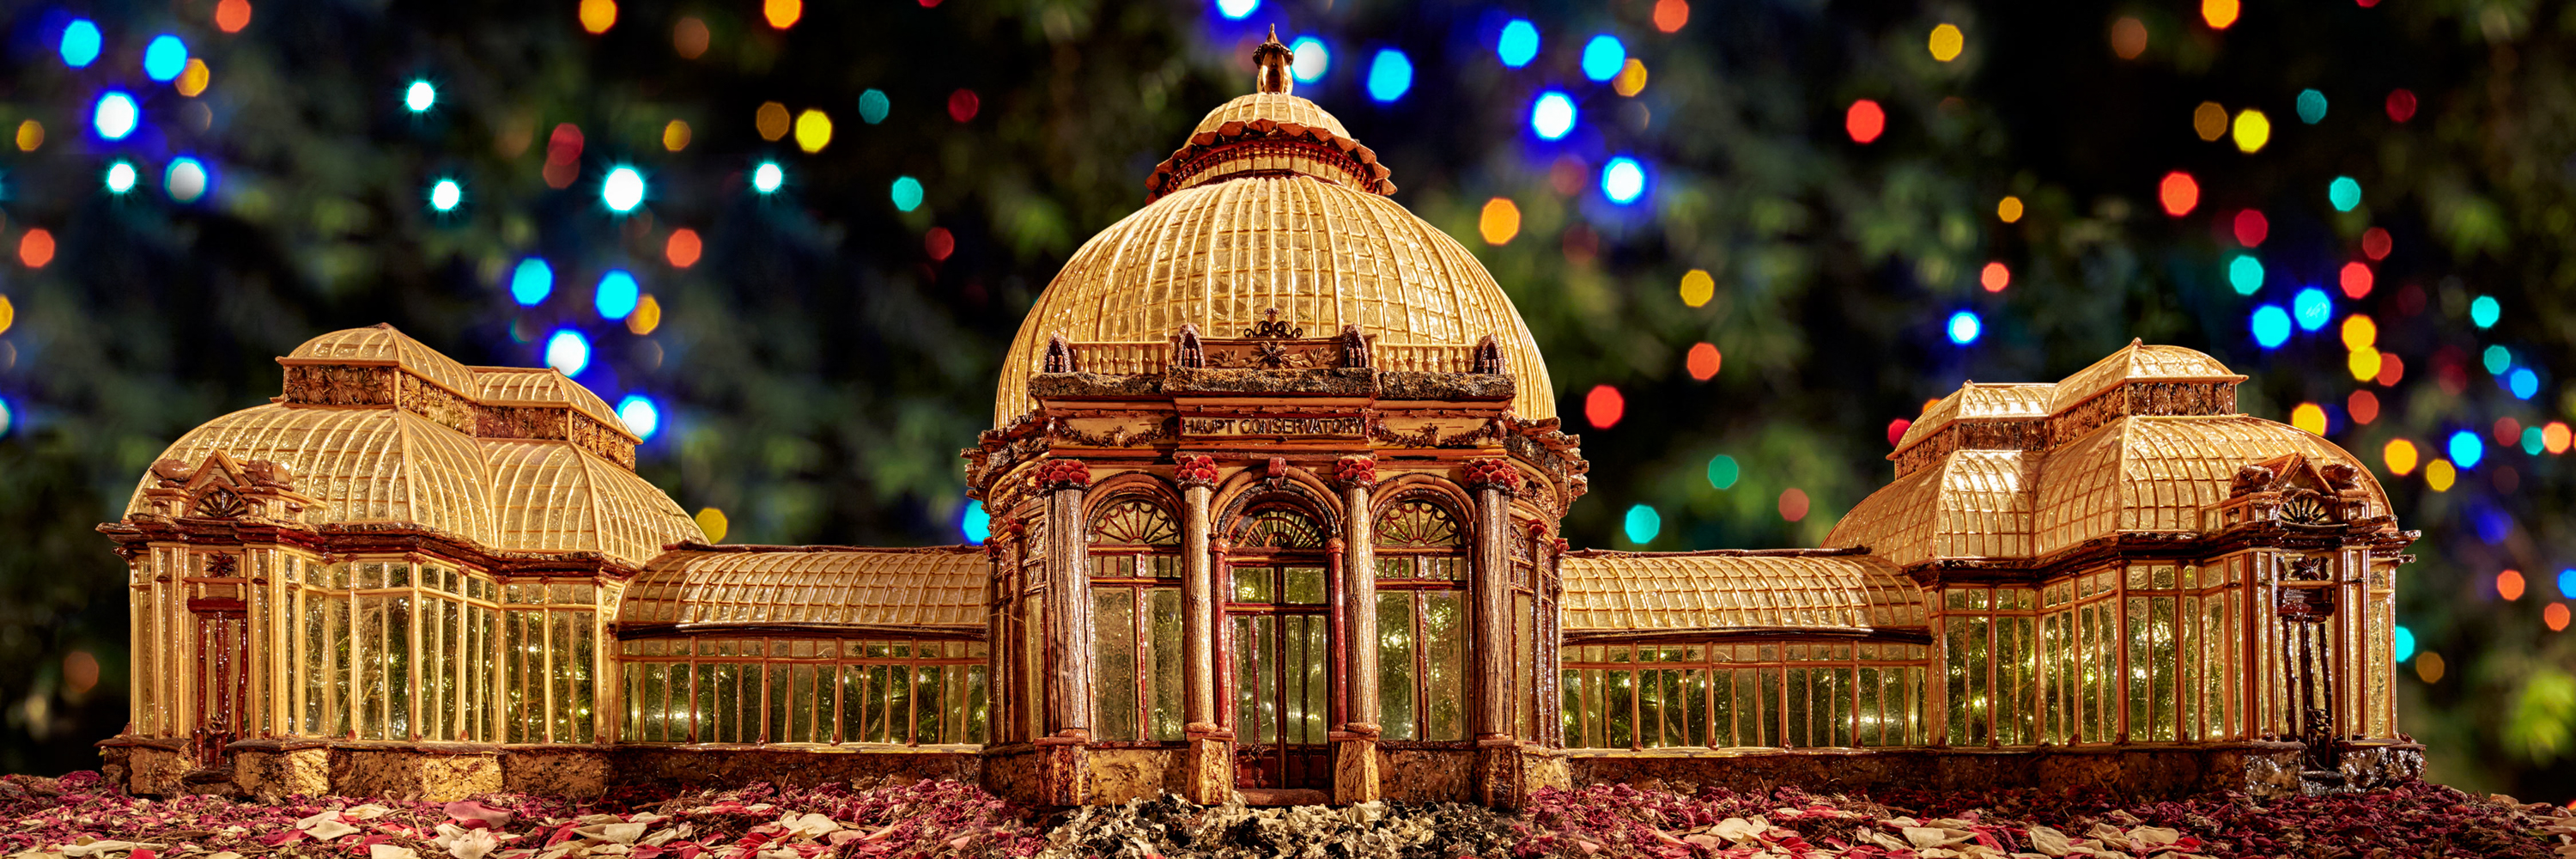 Support the Holiday Train Show® Family Benefit - New York Botanical ...